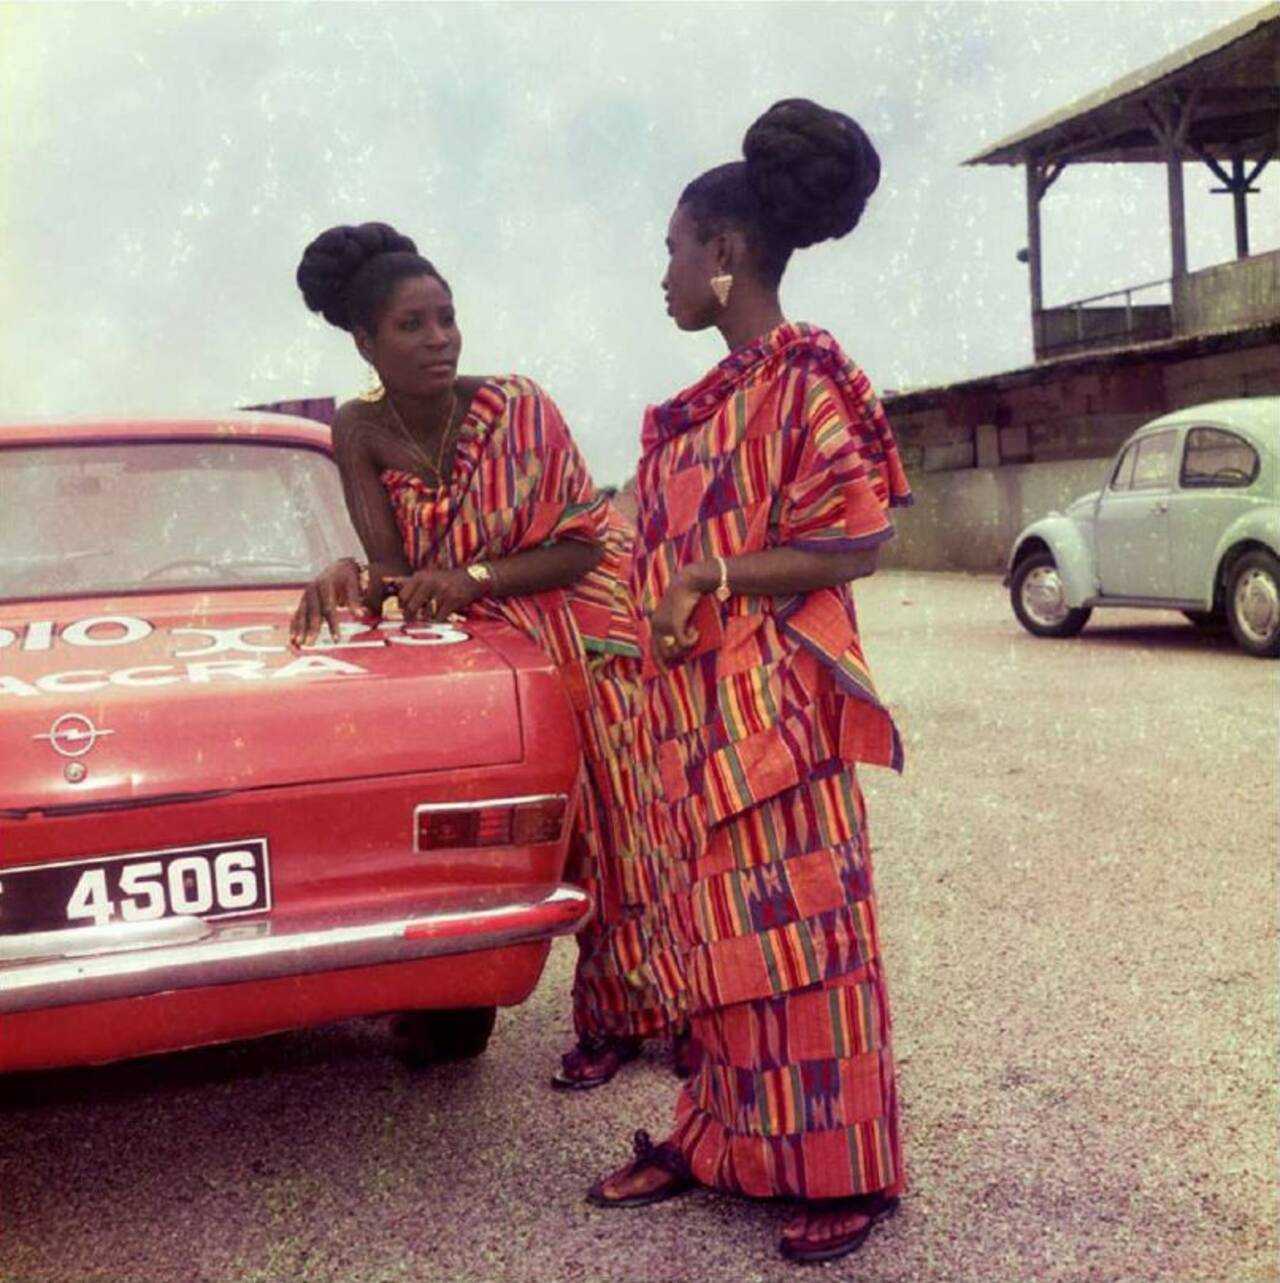 Fashion, Race and Colour Photography: James Barnor in Conversation